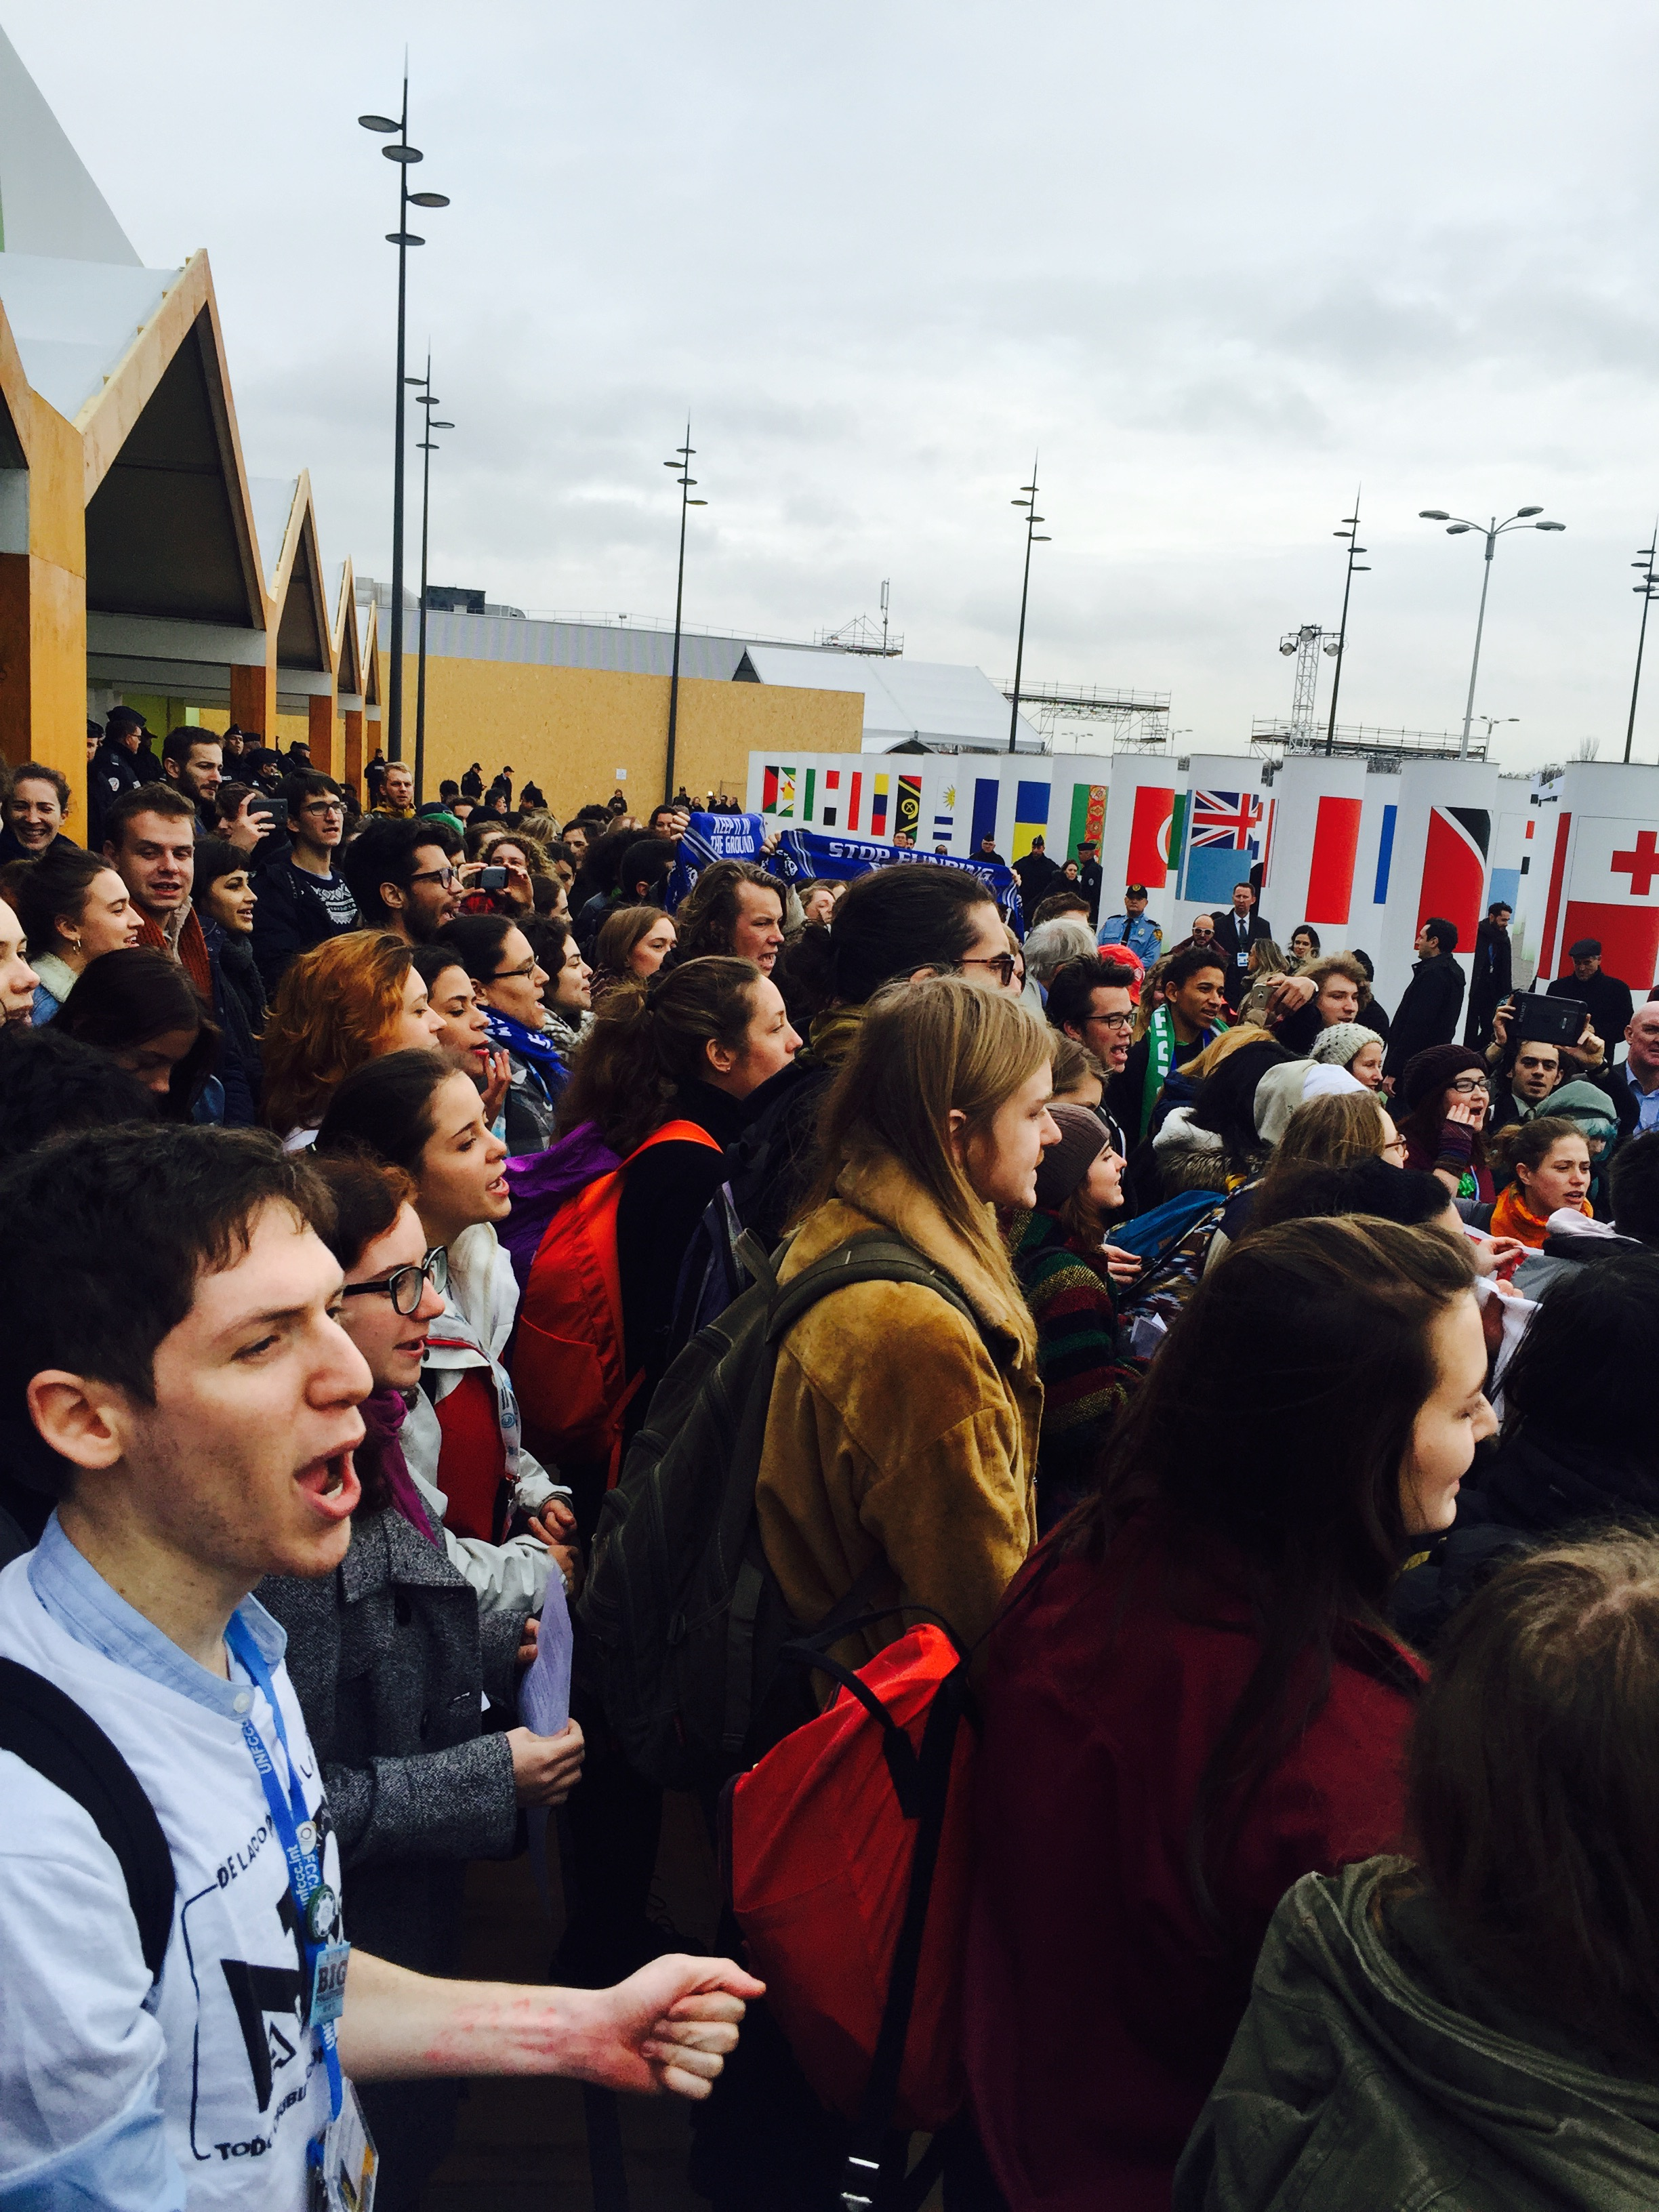 Young people leading an action at COP21 in Paris, France.